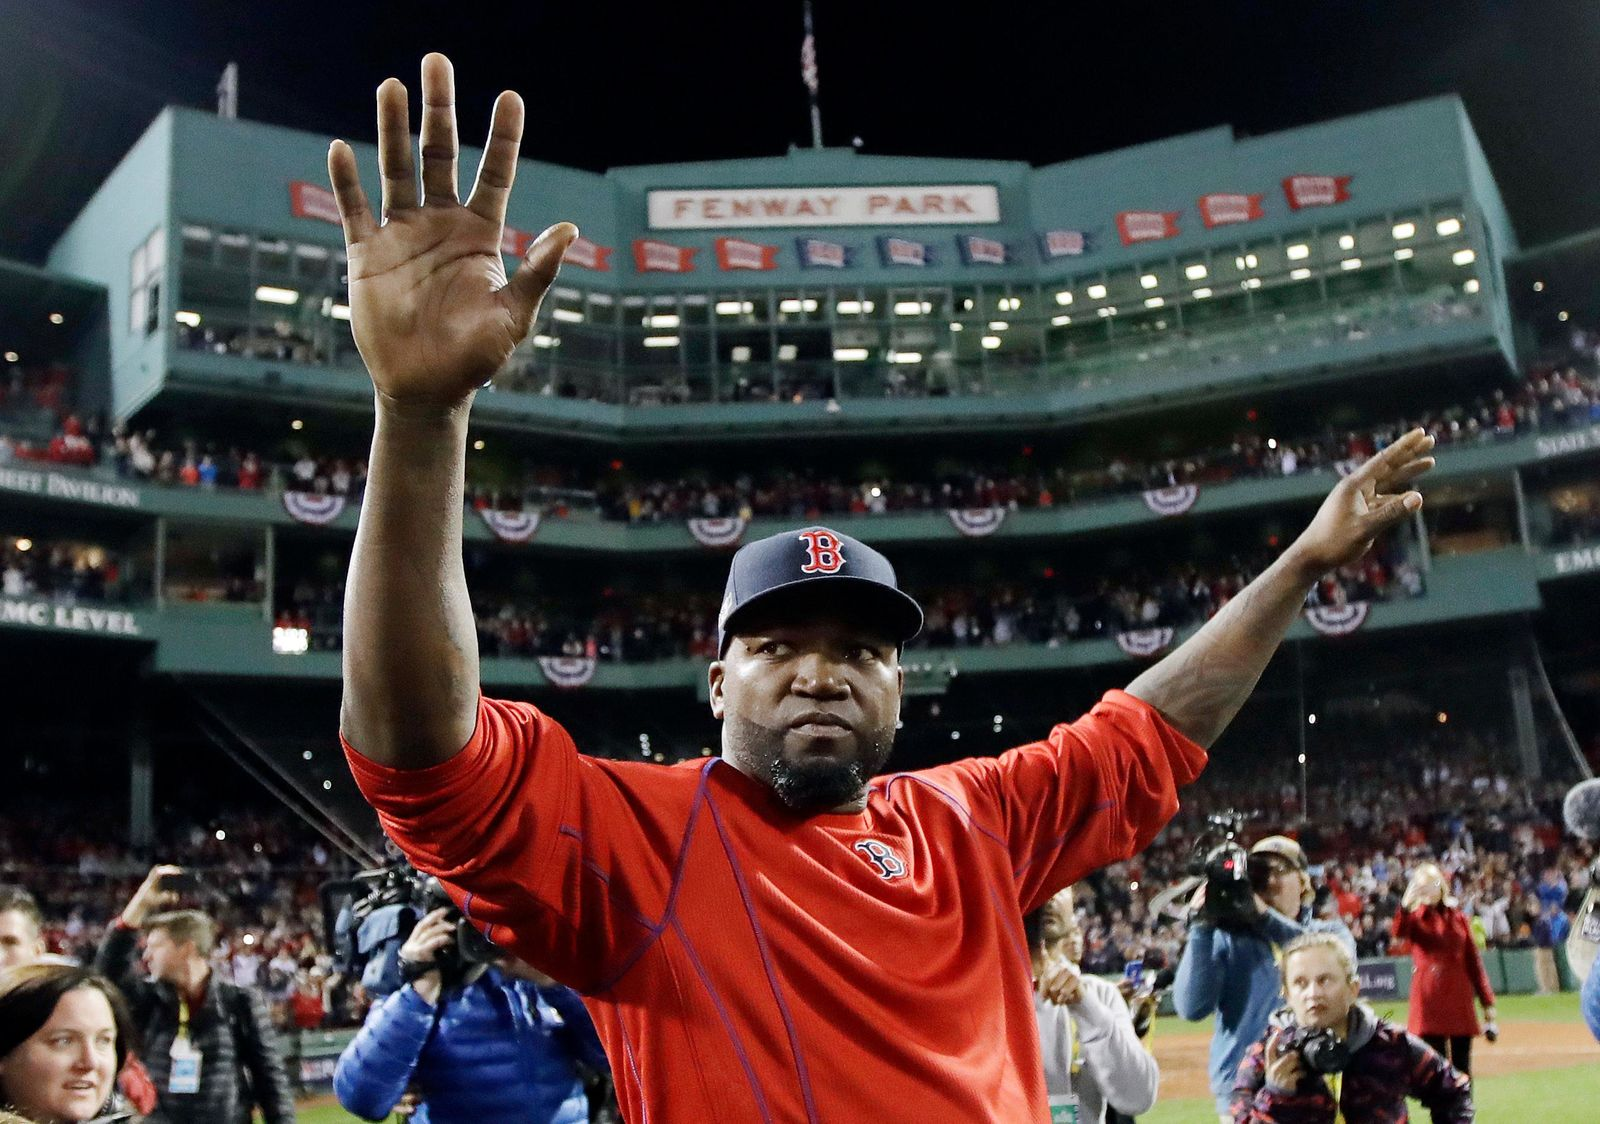 FILE - In this Oct. 10, 2016, file photo, Boston Red Sox's David Ortiz waves from the field at Fenway Park after Game 3 of baseball's American League Division Series against the Cleveland Indians in Boston.{ } (AP Photo/Charles Krupa, File)